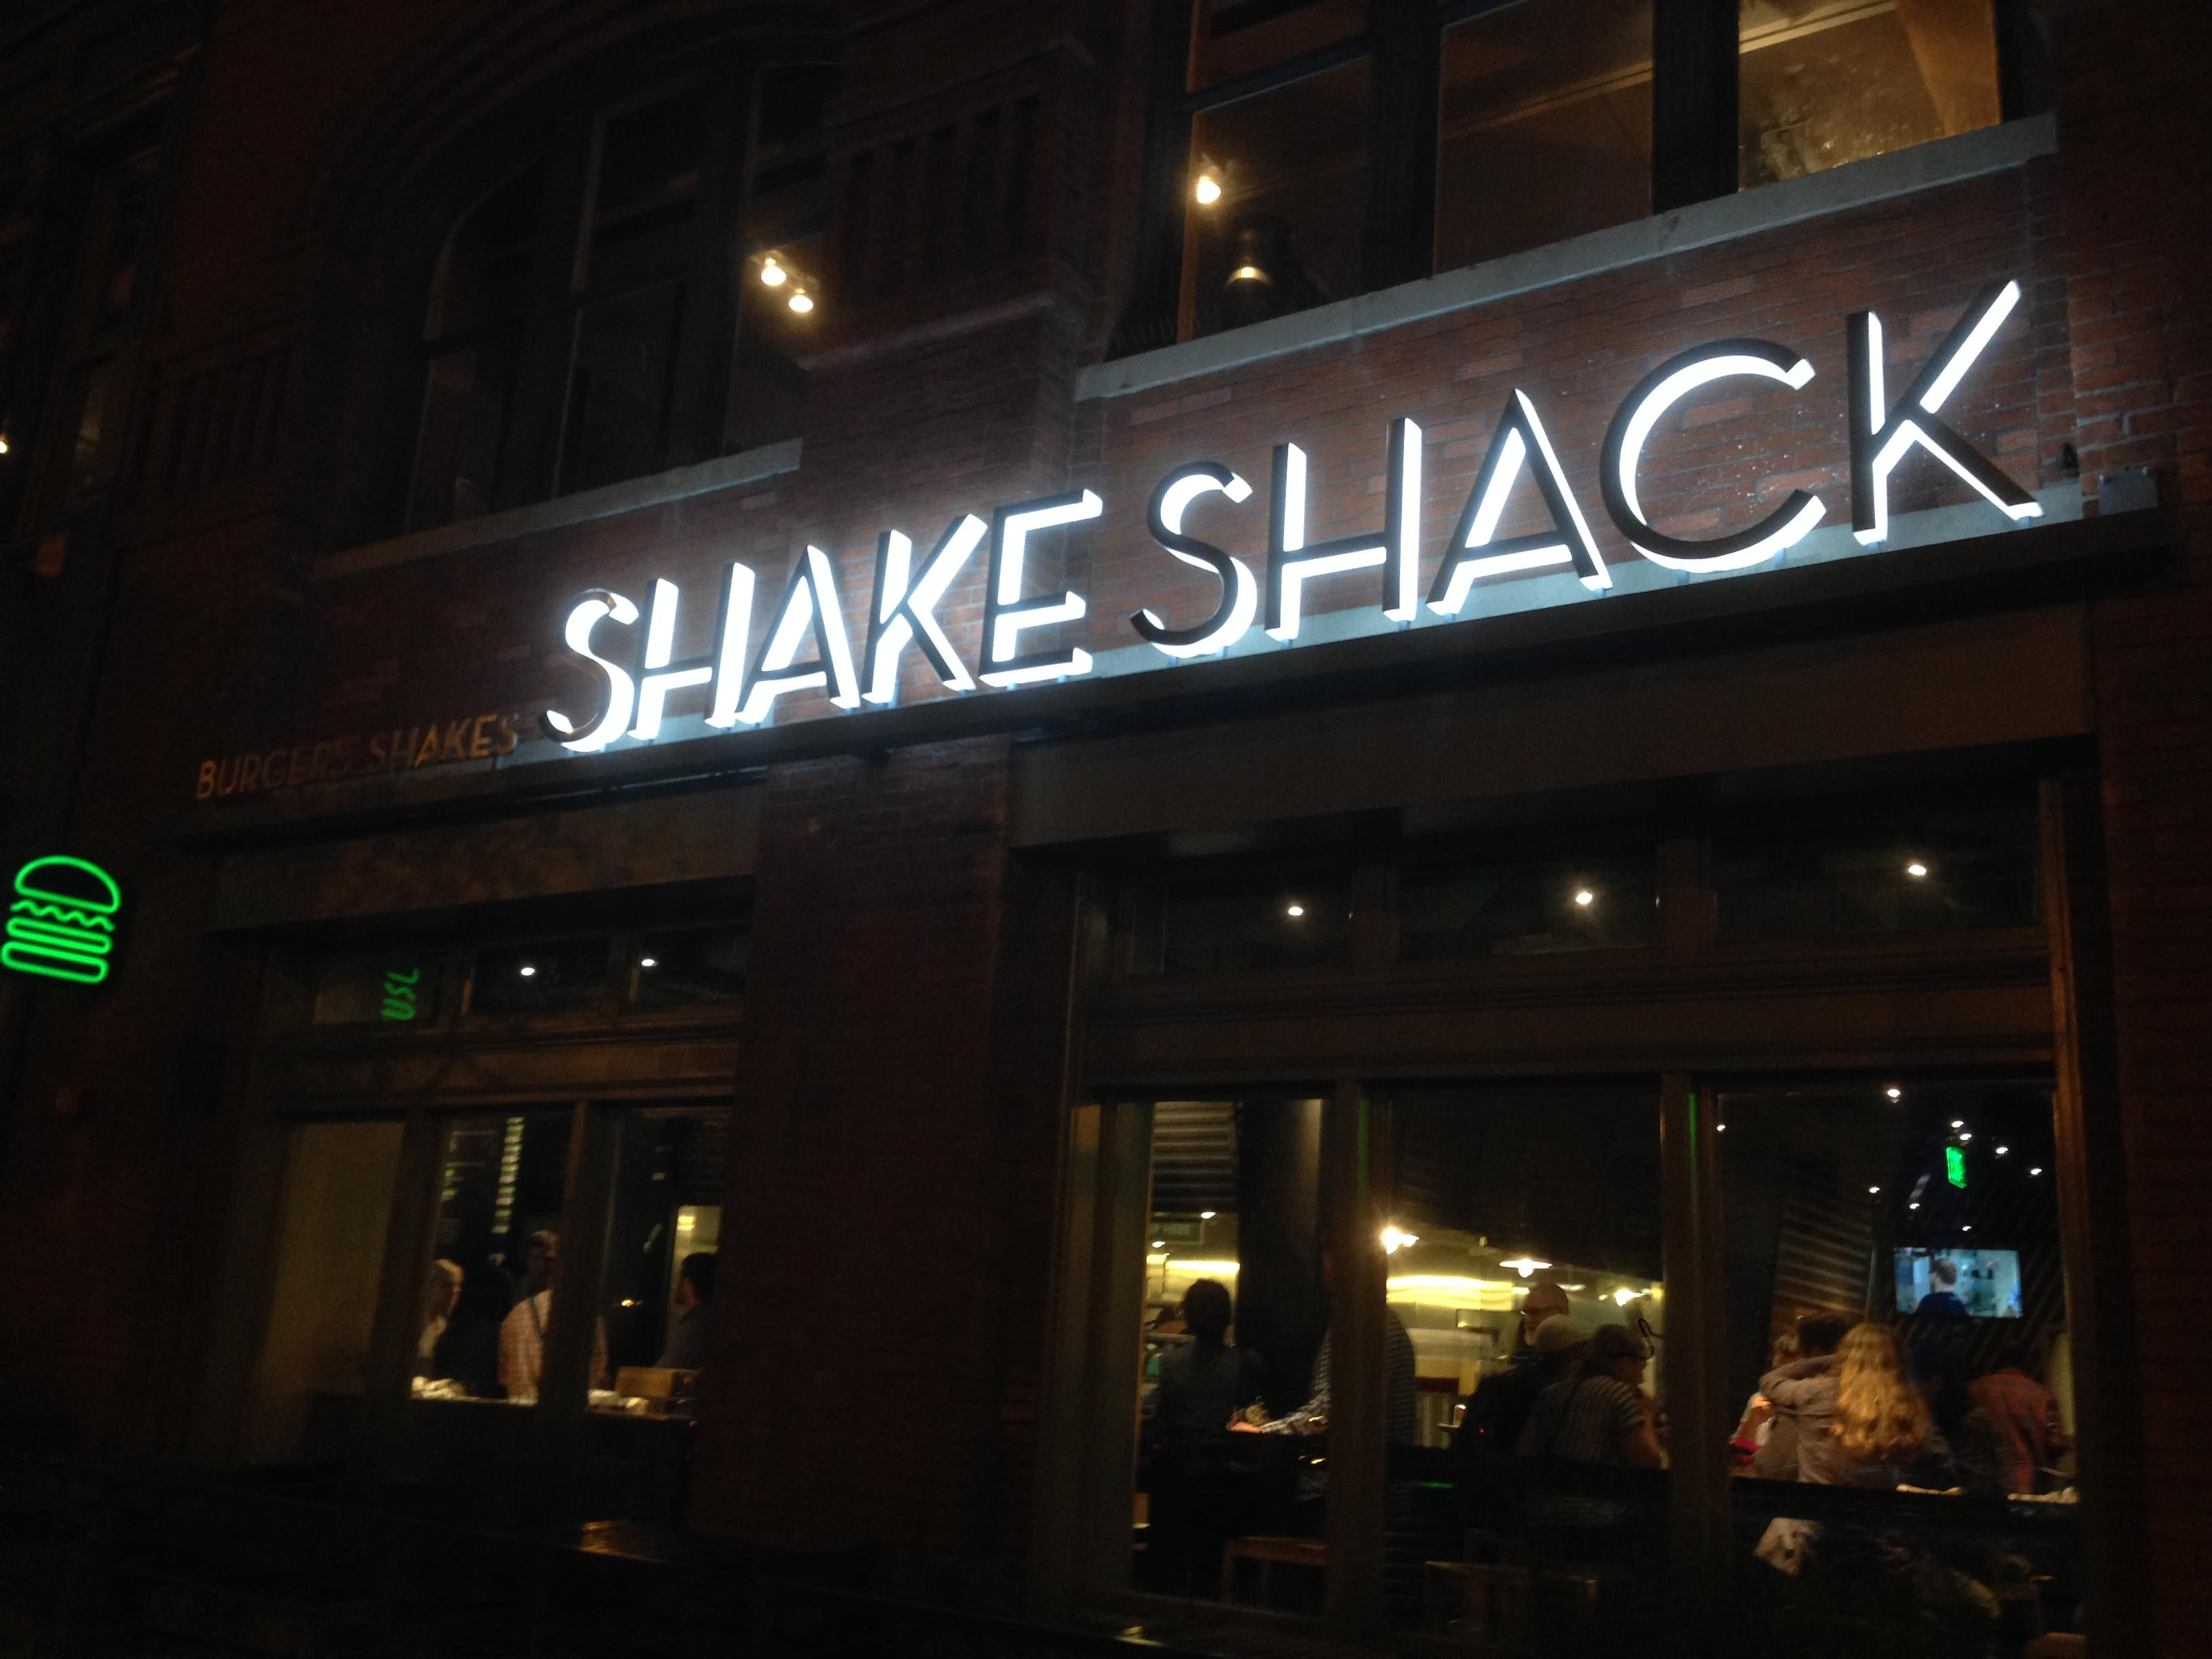 Shake Shack on F Street in Washington, DC. (Image: Frank Guanco)